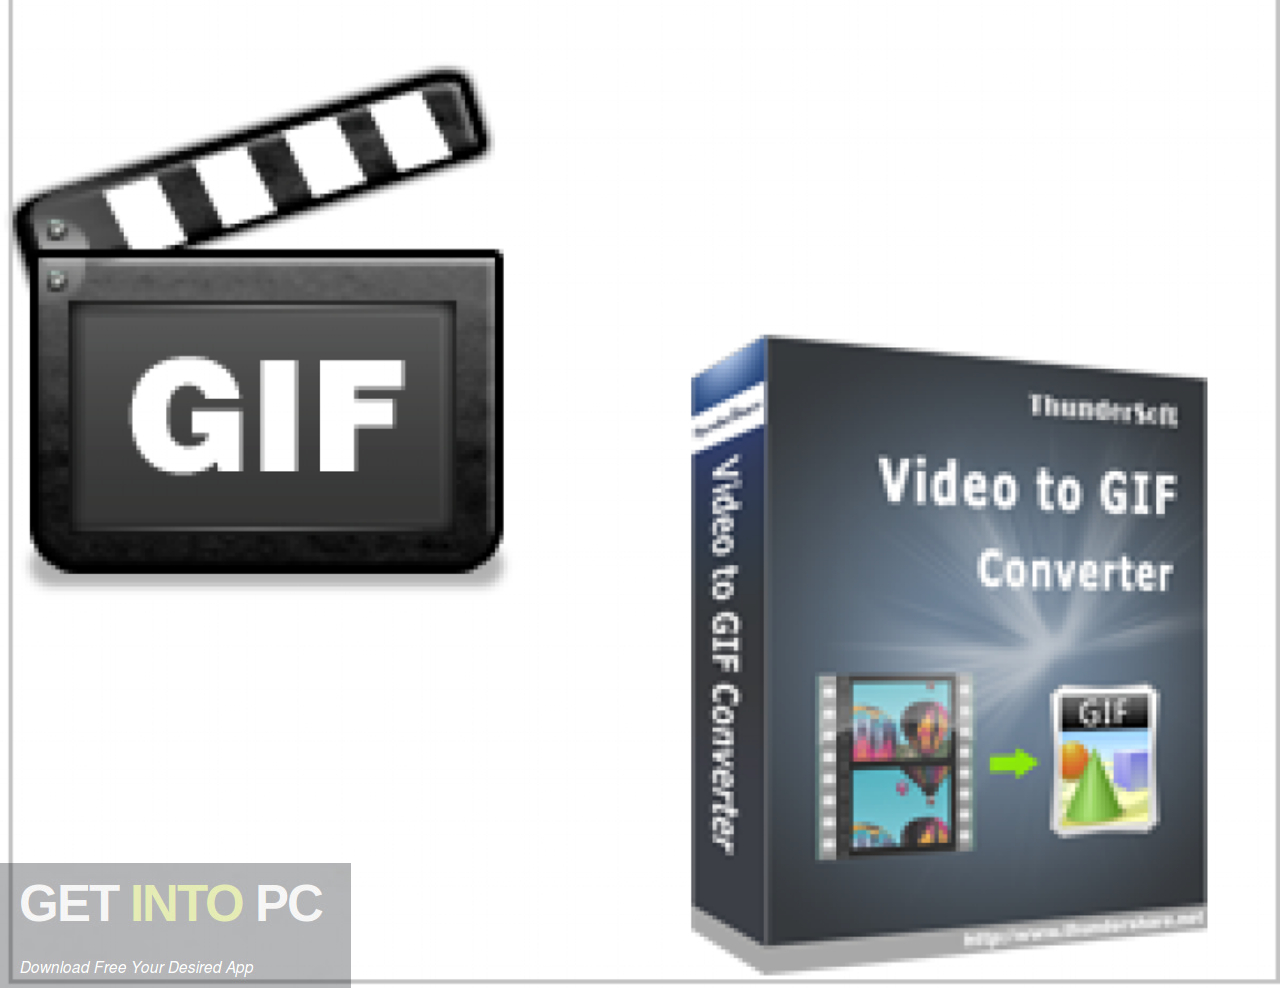 ThunderSoft Video to GIF Converter 2020 Free Download